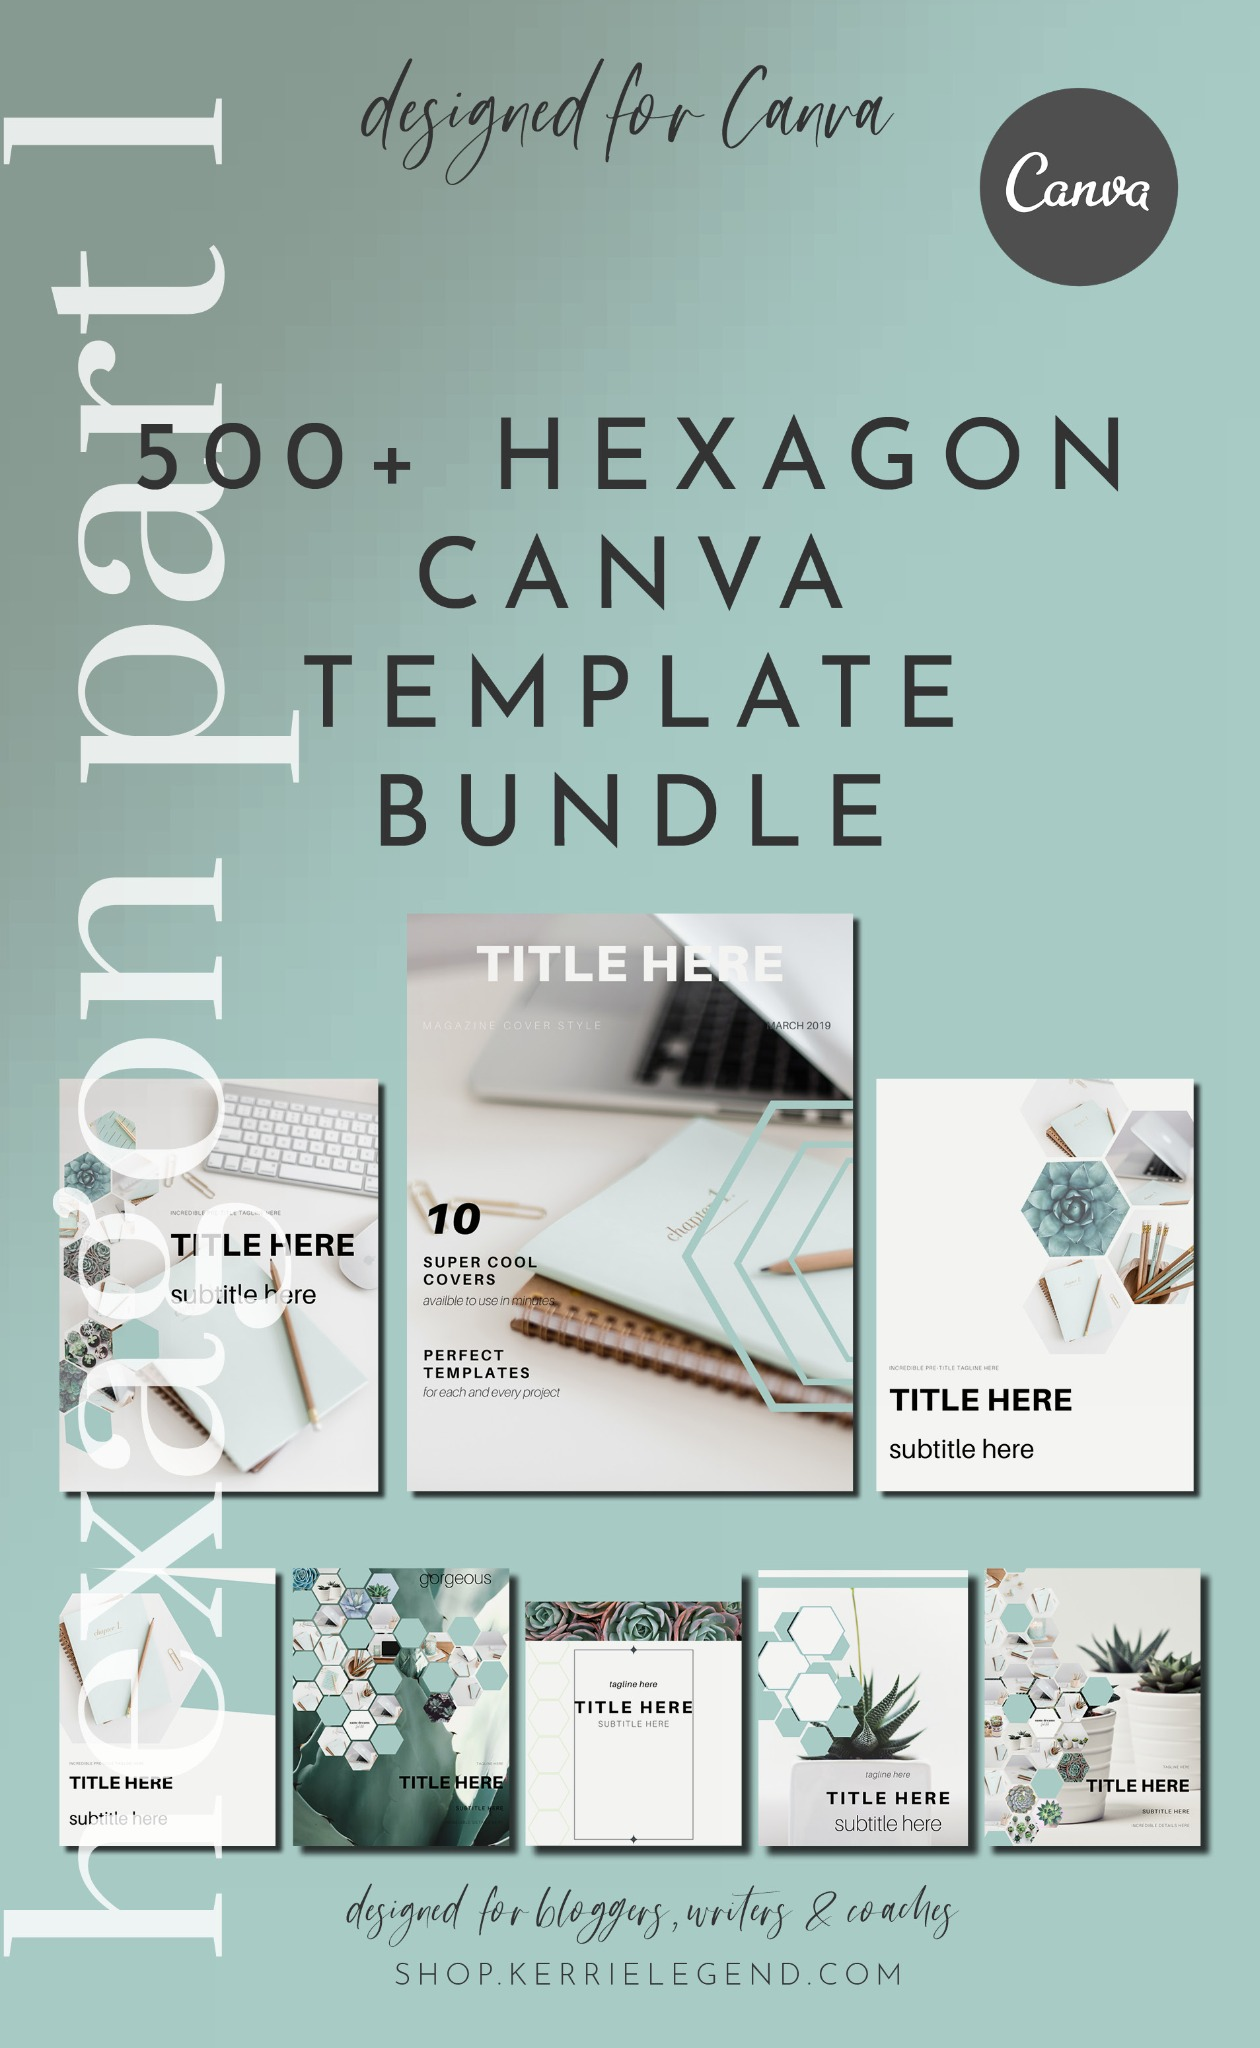 500+ Canva Template Bundle - Hexagon Part 1